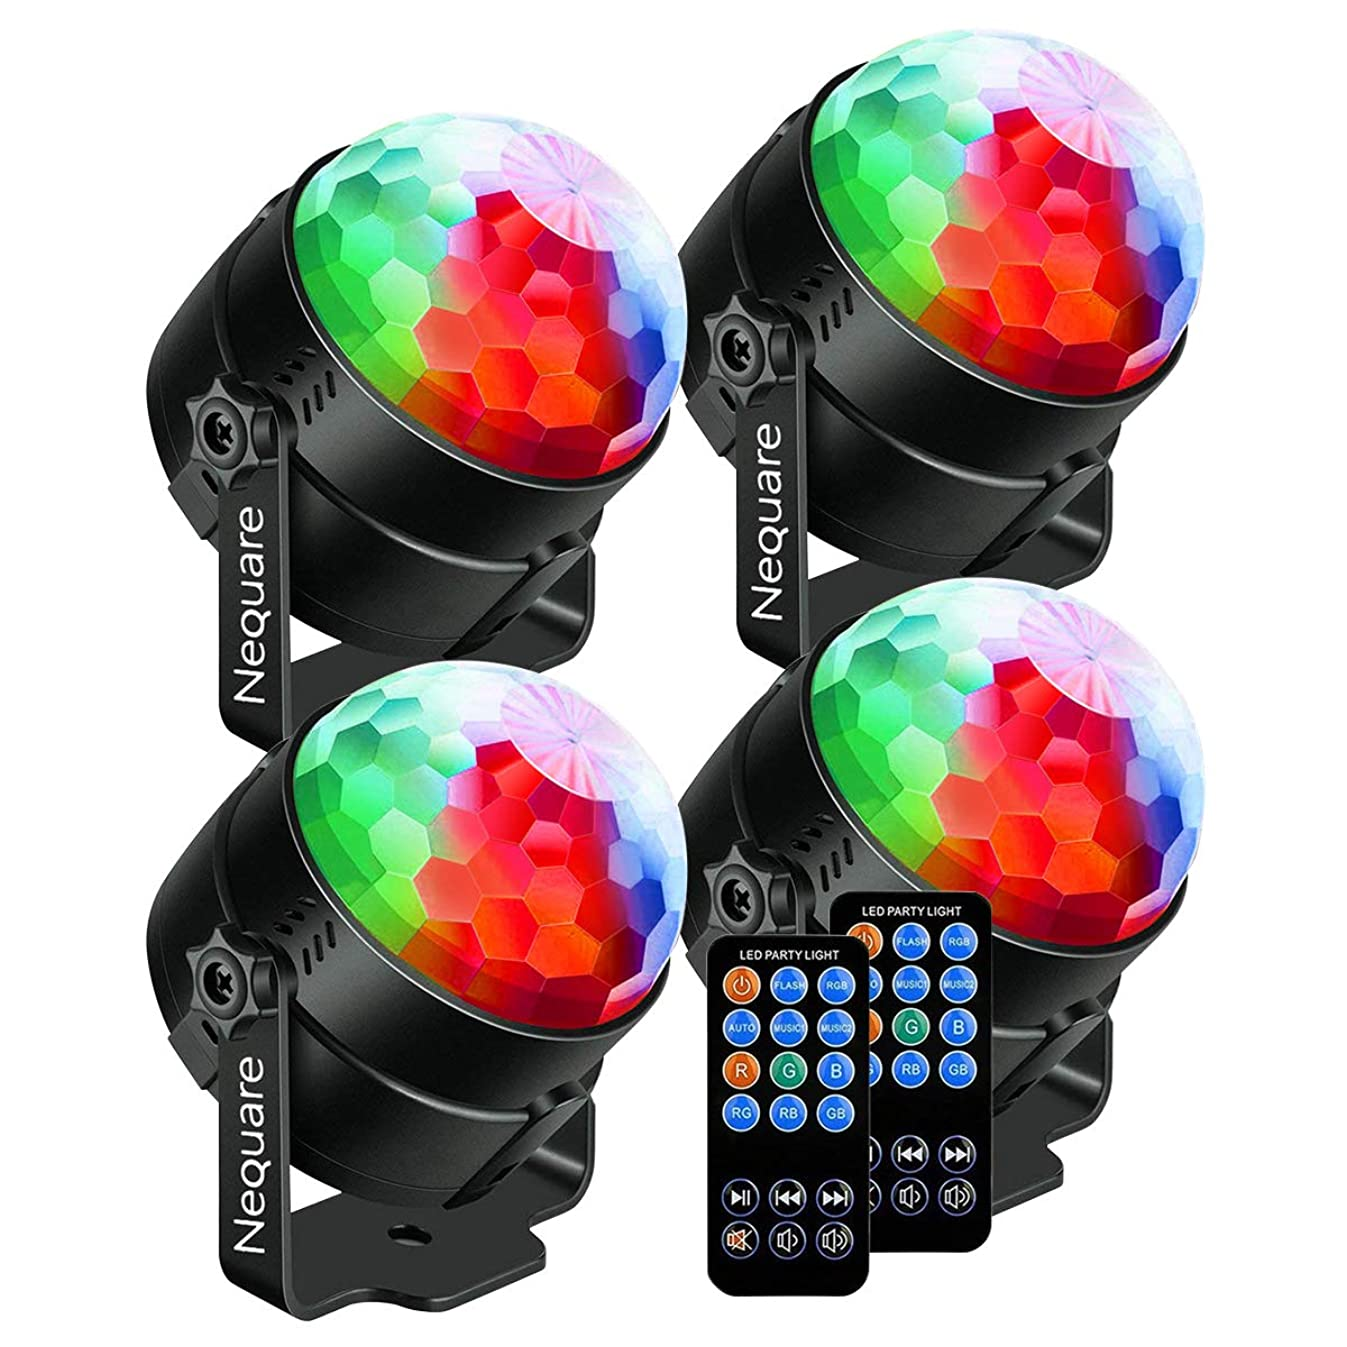 Nequare Party Lights Sound Activated Disco Ball Strobe Light 7 Lighting Color Disco Lights with Remote Control for Bar Club Party DJ Karaoke Wedding Show and Outdoor (4 PACKS)